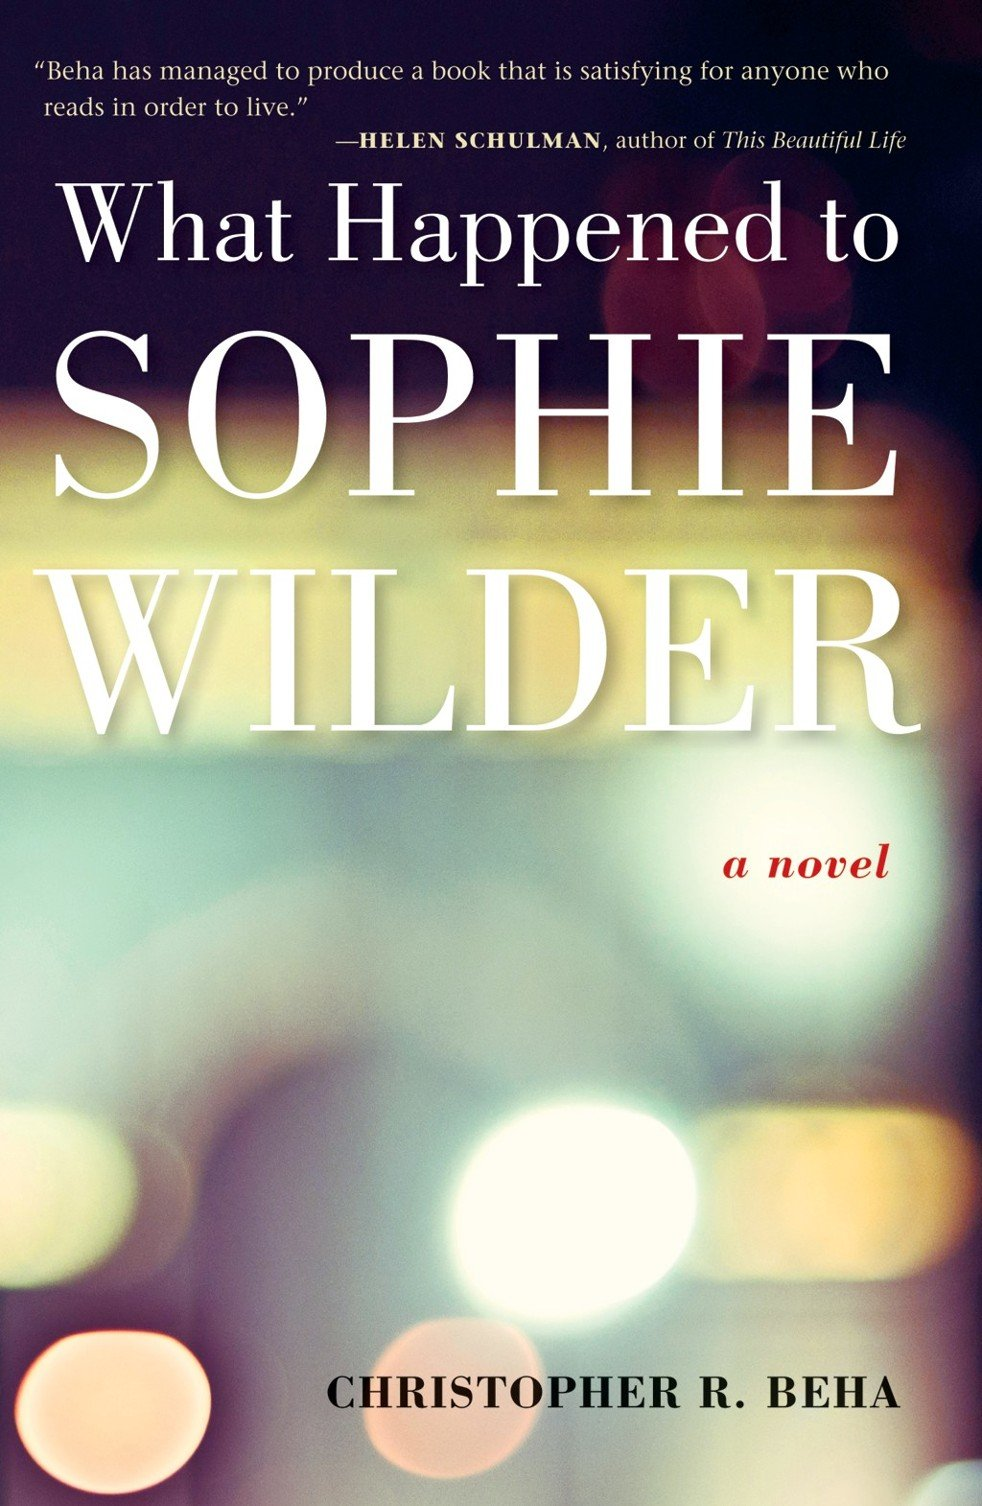 What Happened to Sophie Wilder by Christopher Beha